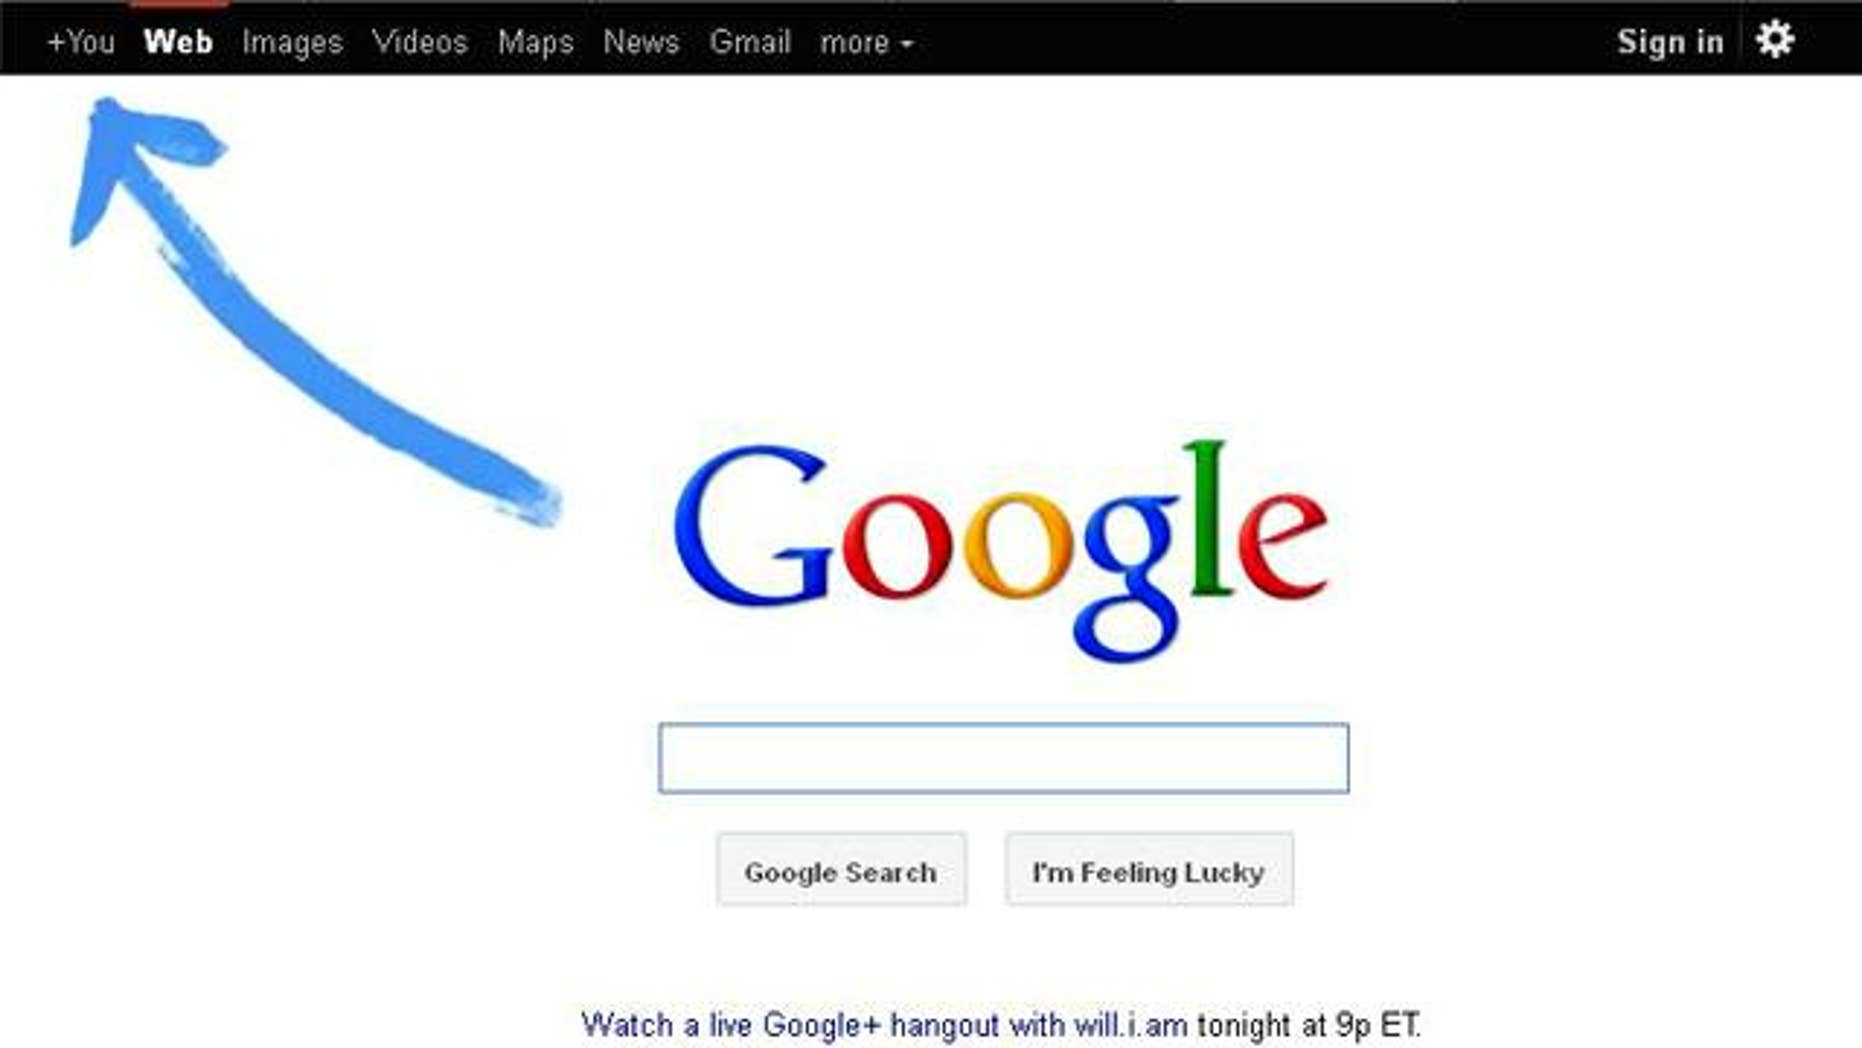 Sept. 21, 2011: The Google website invites all users to join the company's new social network, Google+, which is finally open for all comers.